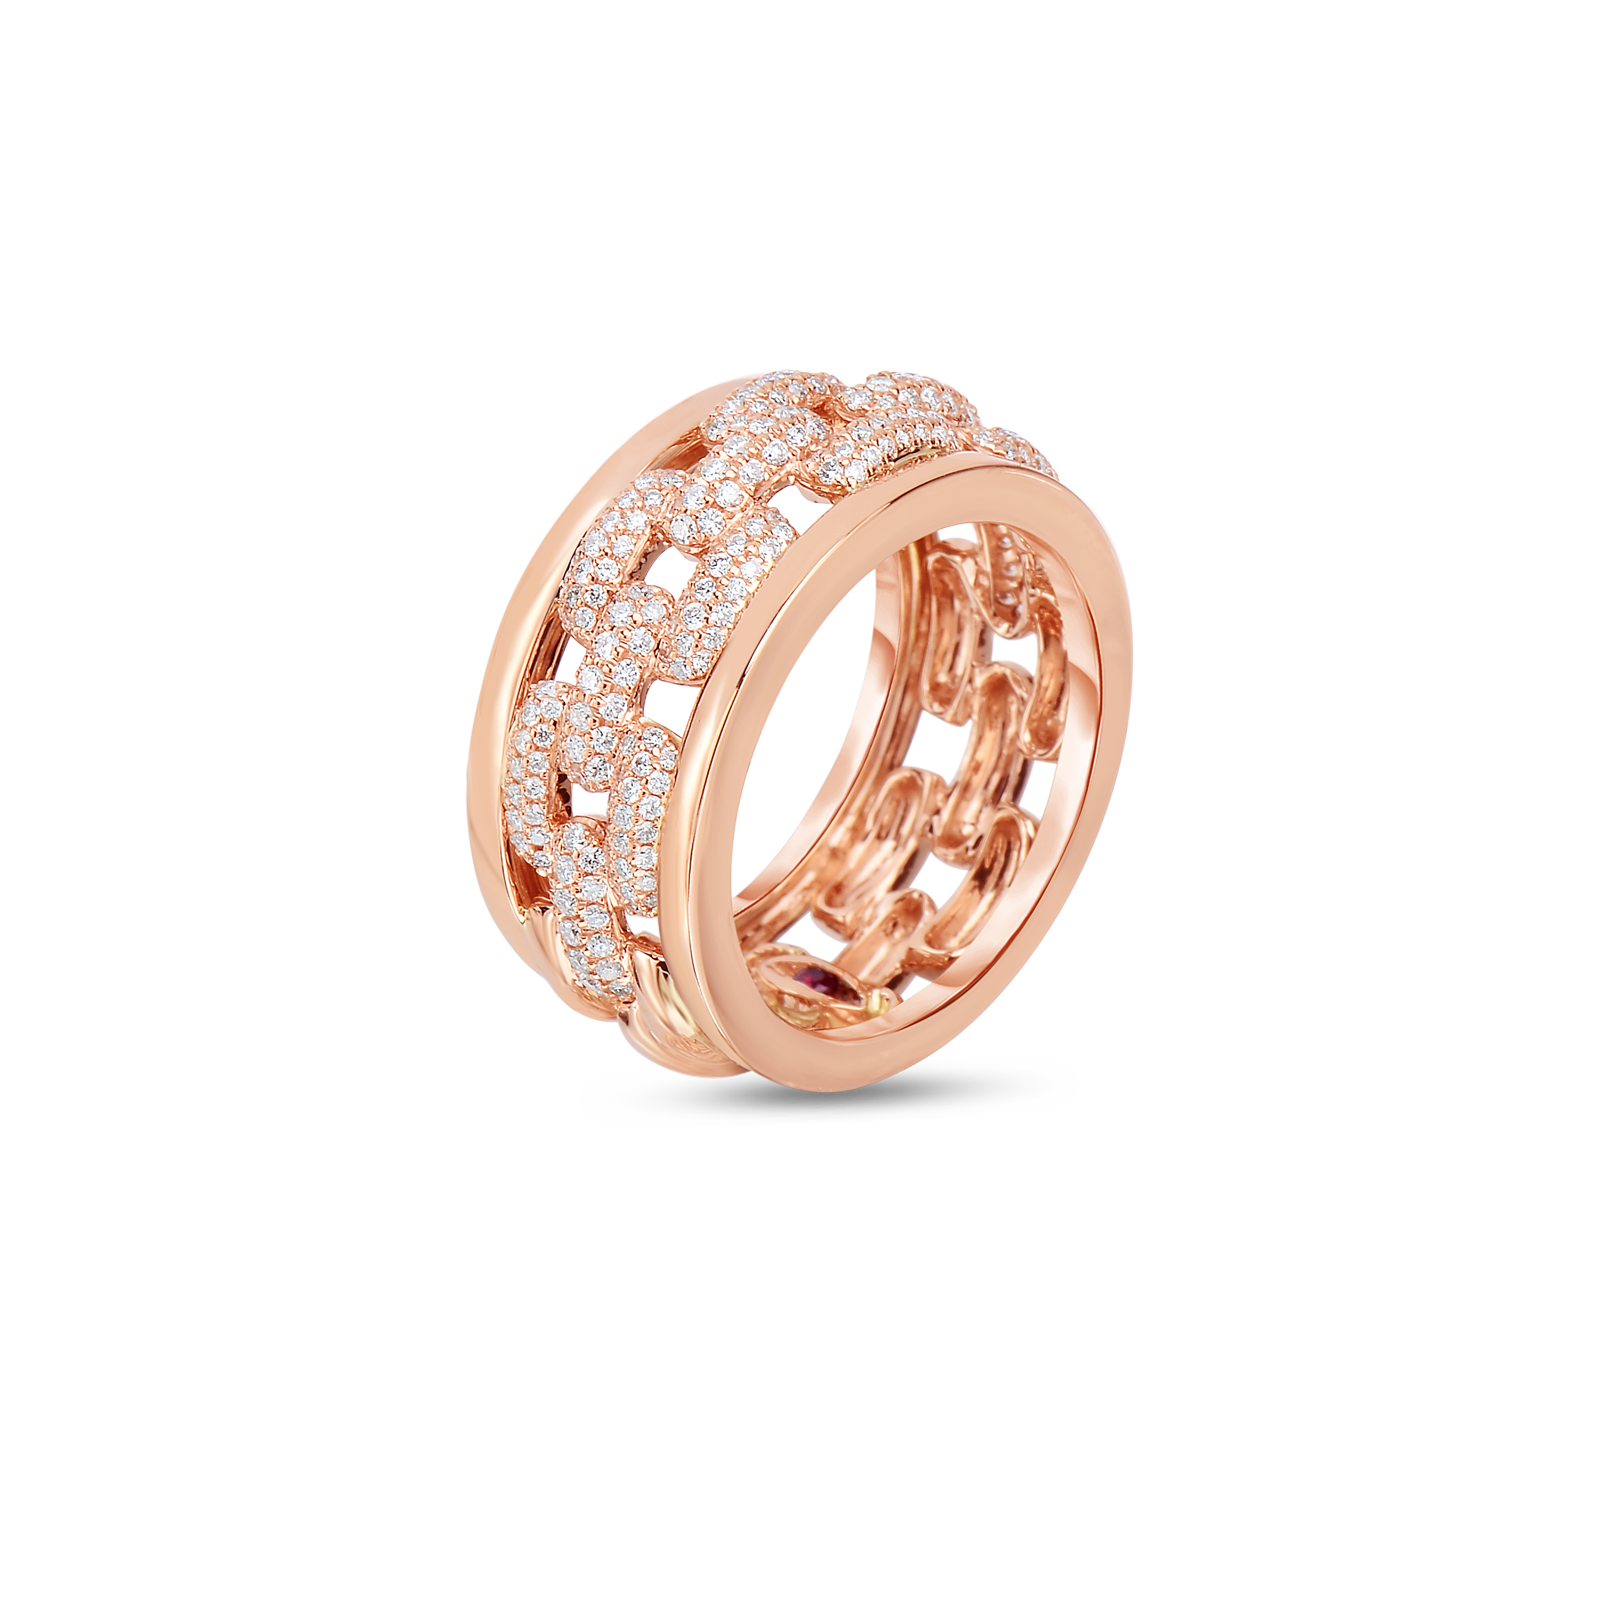 Roberto-Coin-Classic-Diamond-18K-Rose-Gold-Ring-with-Diamonds-519201AX65X0_SIDE